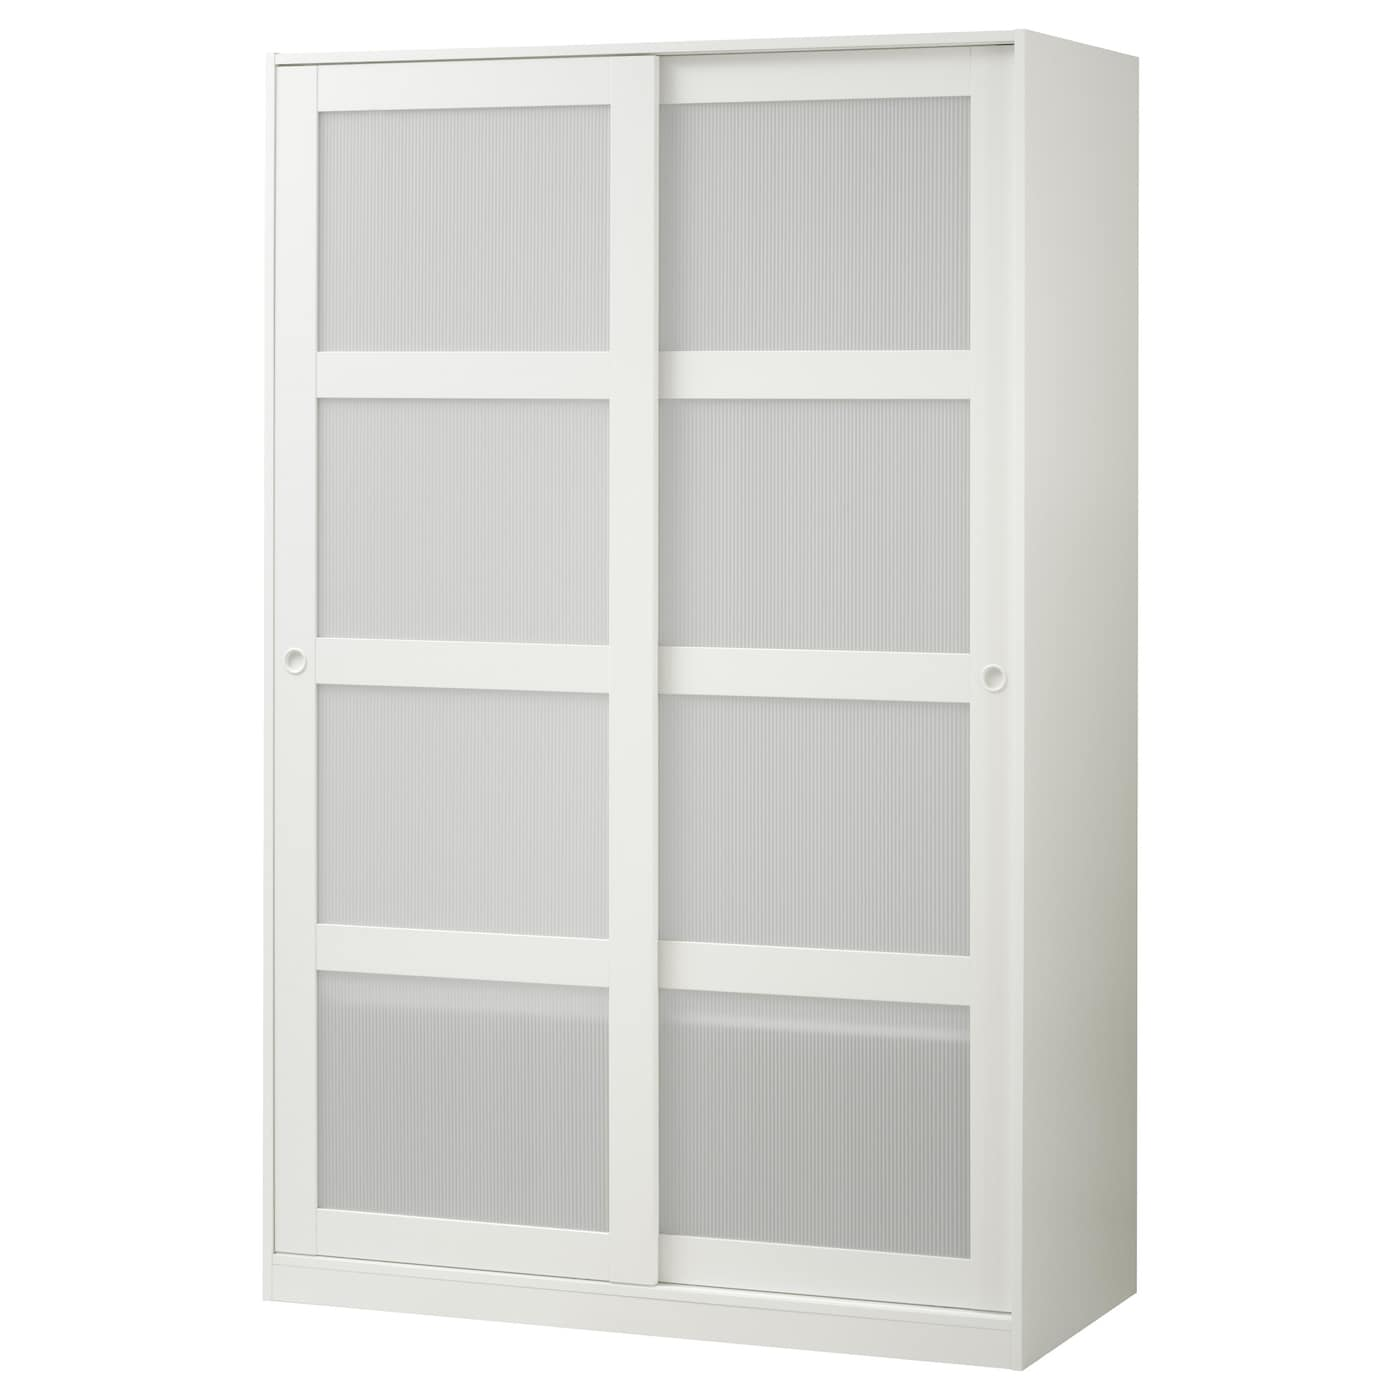 IKEA KVIKNE Wardrobe With 2 Sliding Doors Customise The Space Adjustable Shelf